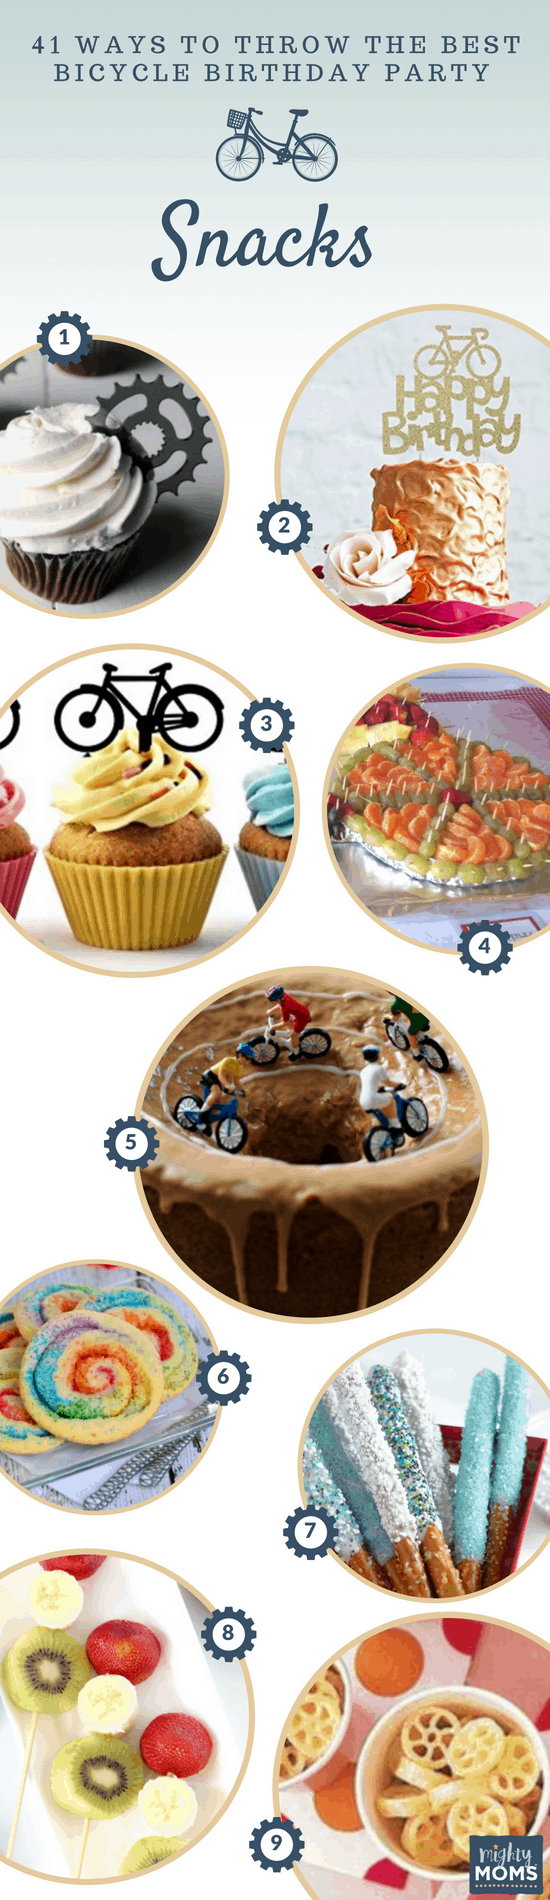 Bicycle Birthday Party Sweet Treat Ideas - MightyMoms.club